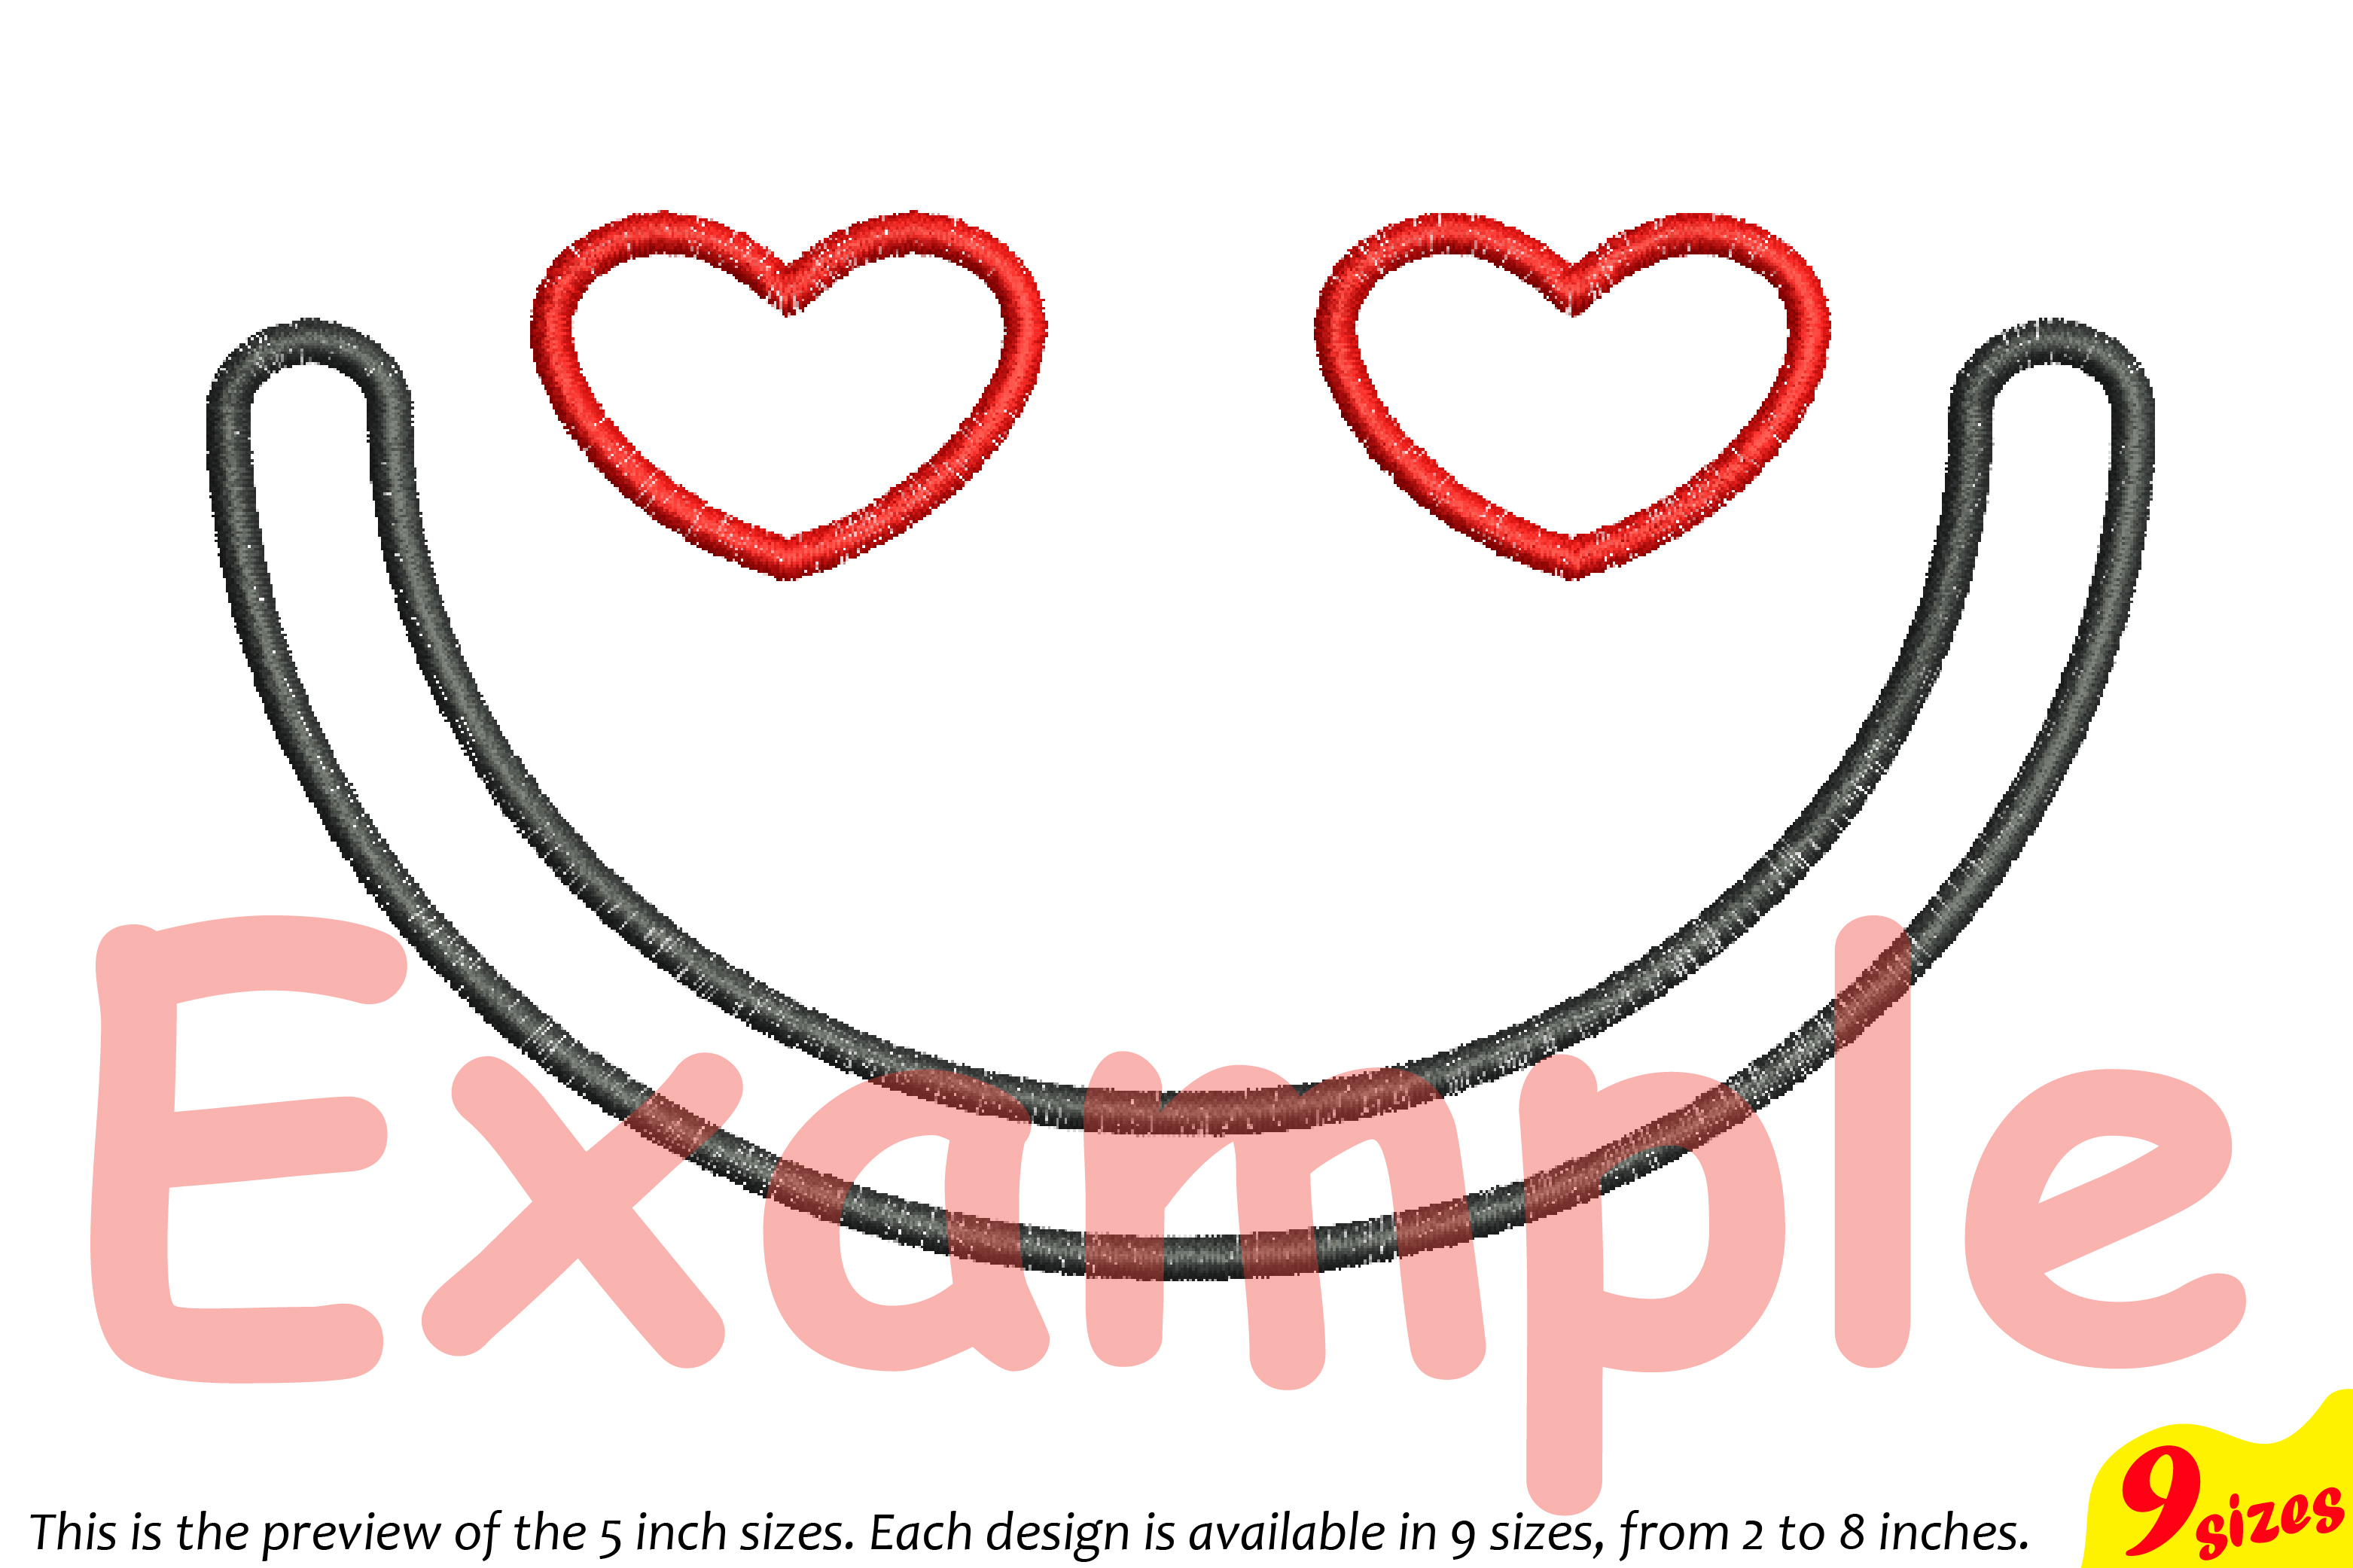 Cute Emoji Embroidery Design Machine Instant Download Commercial Use digital file icon symbol sign emoticons smile Kawaii Expression 185b example image 3